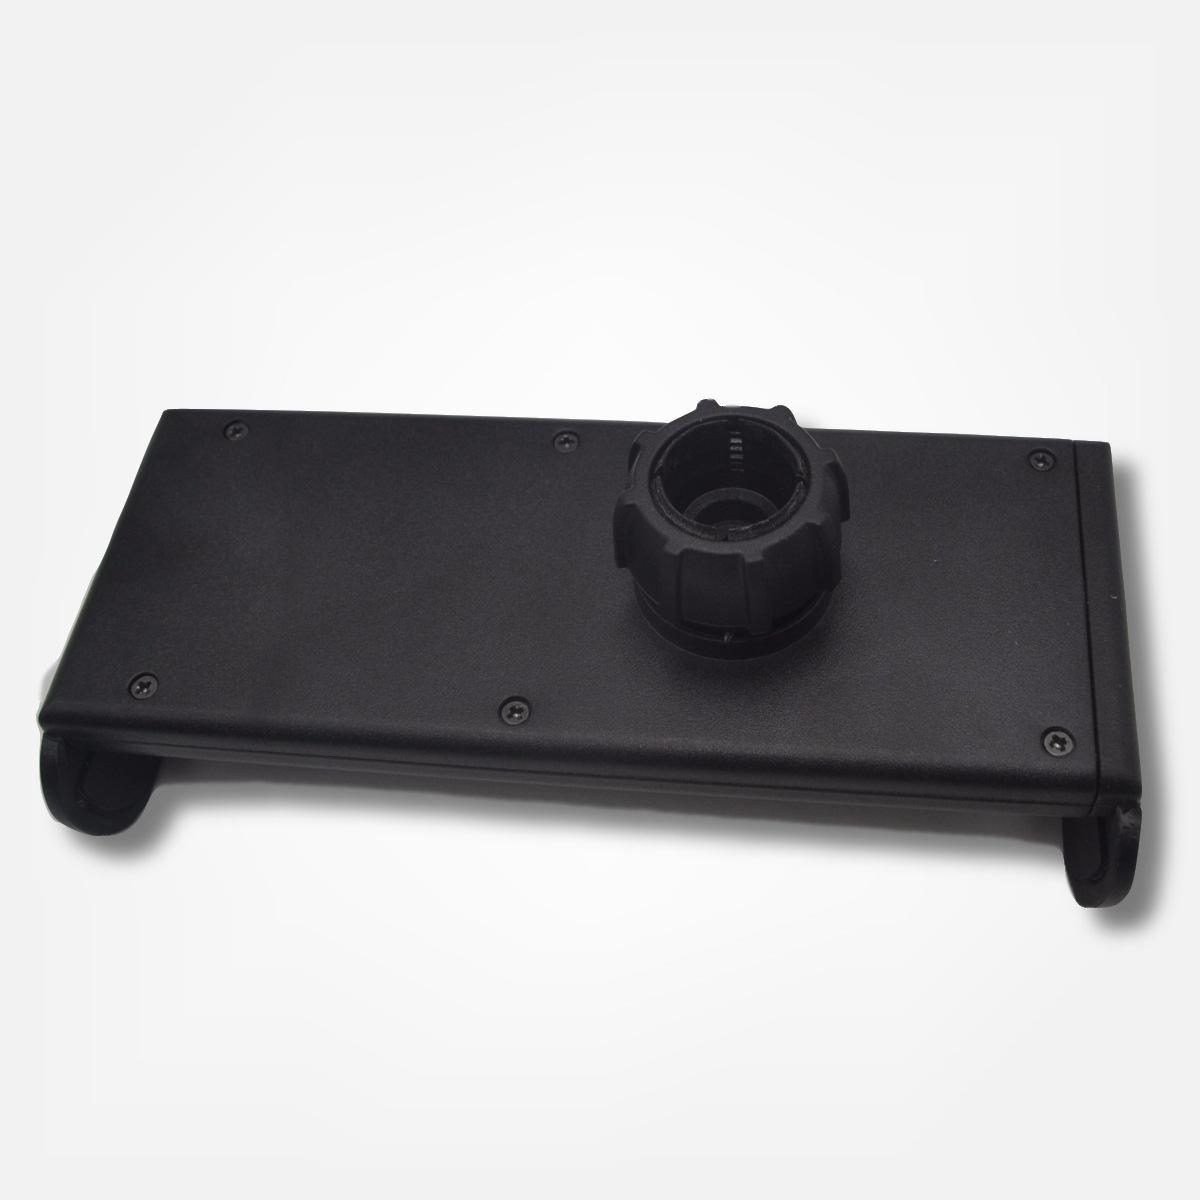 Clip Tablet PC lazy clip stretch 12.9 iPad through bracket head inch head with head bed accessories hand.